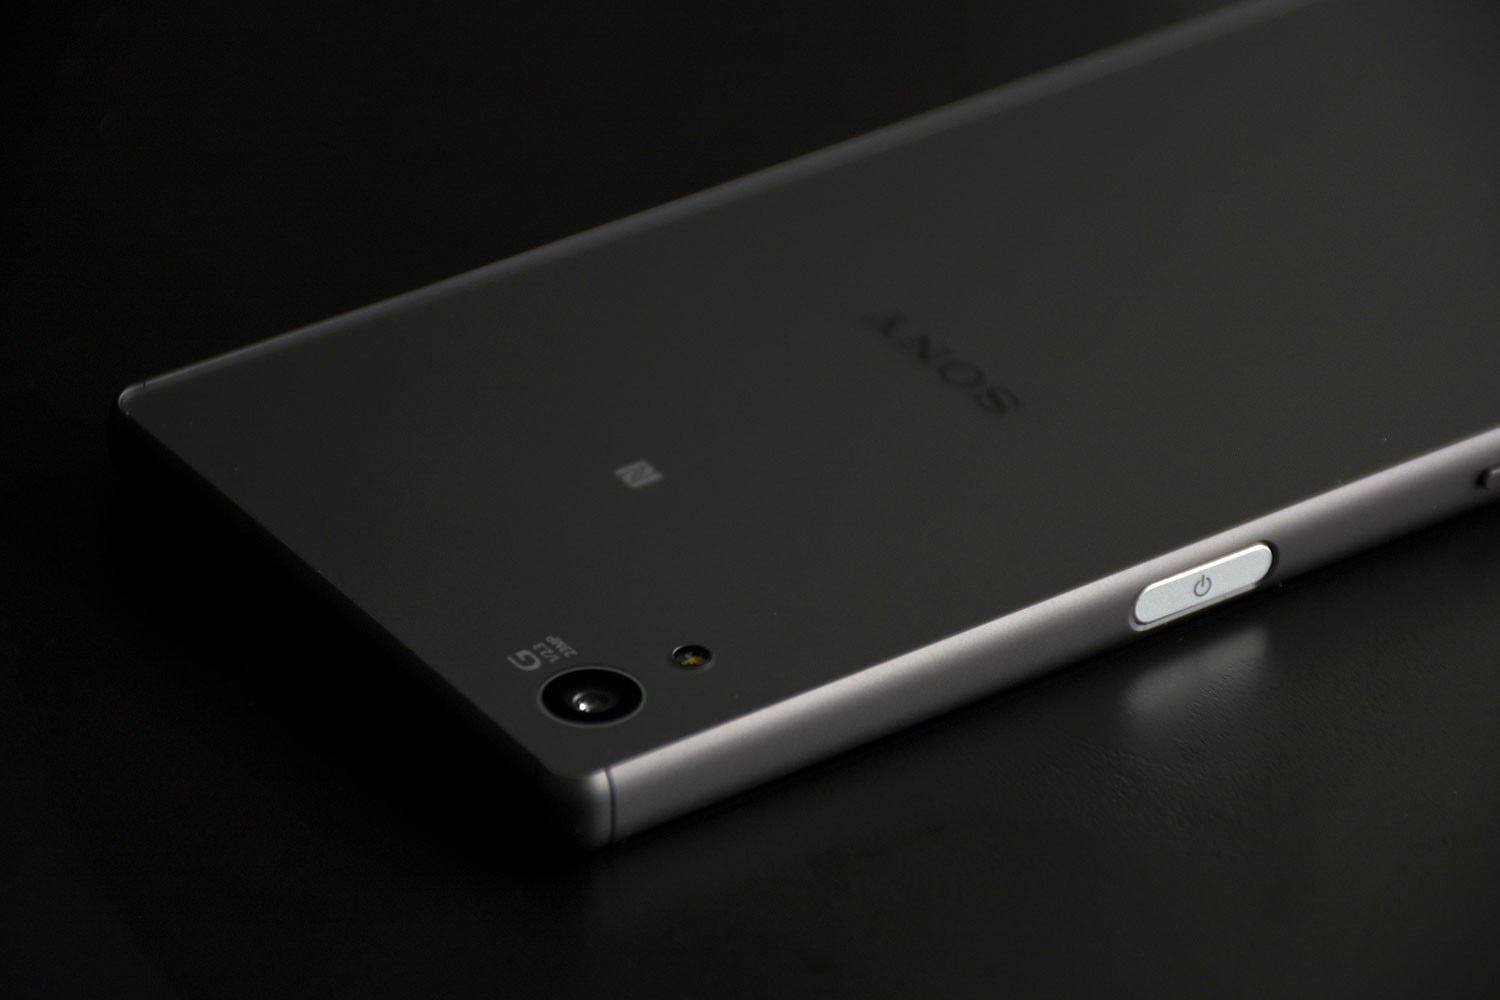 Sony Xperia Z5 Full Review Specs Price And More